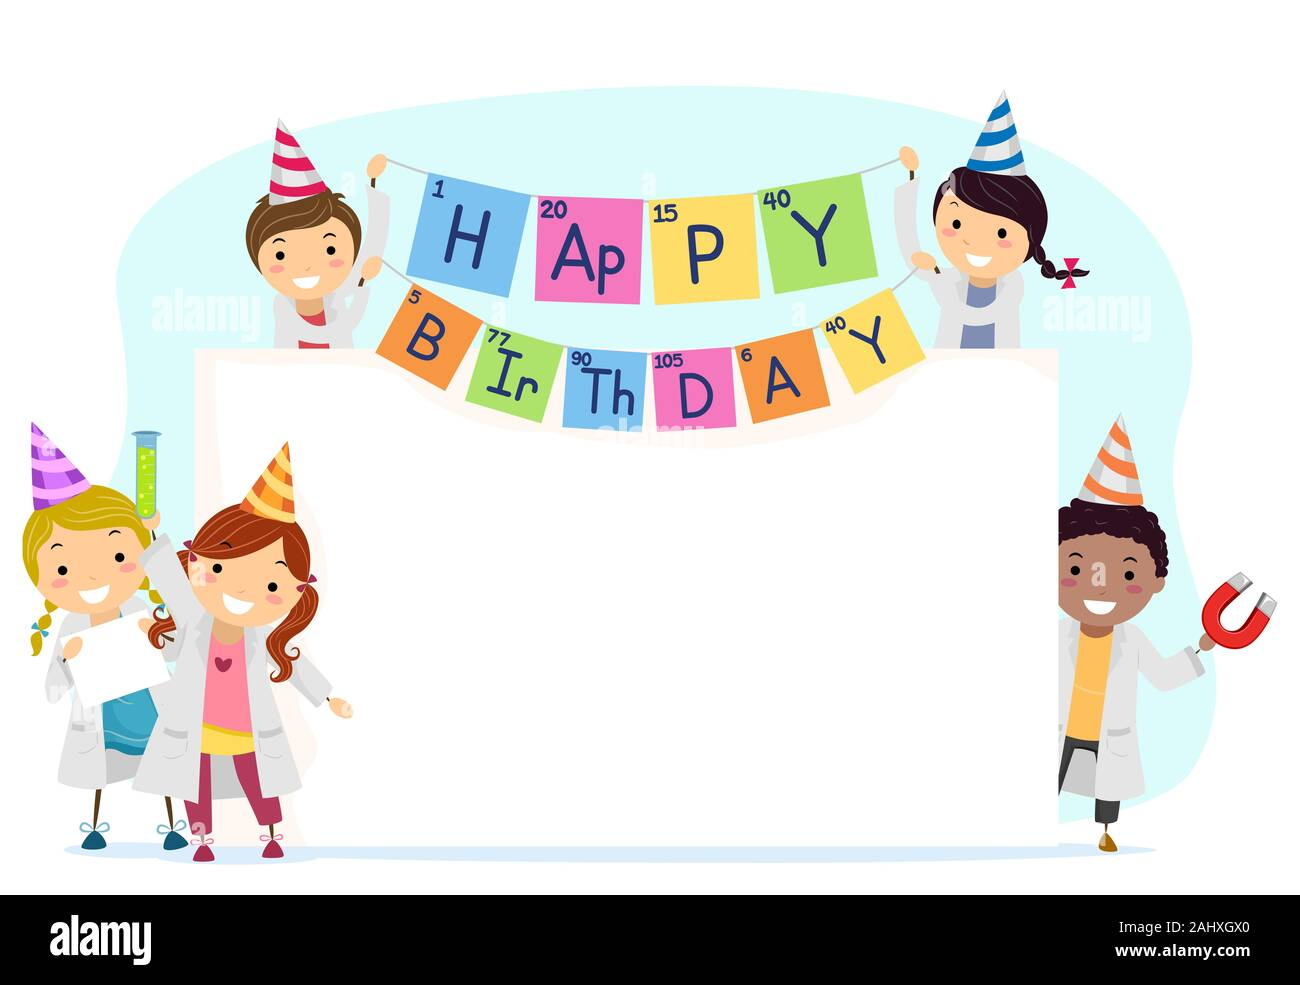 Illustration Of Stickman Kids With Science Themed Decors For A Birthday With A Big Blank Board Stock Photo Alamy